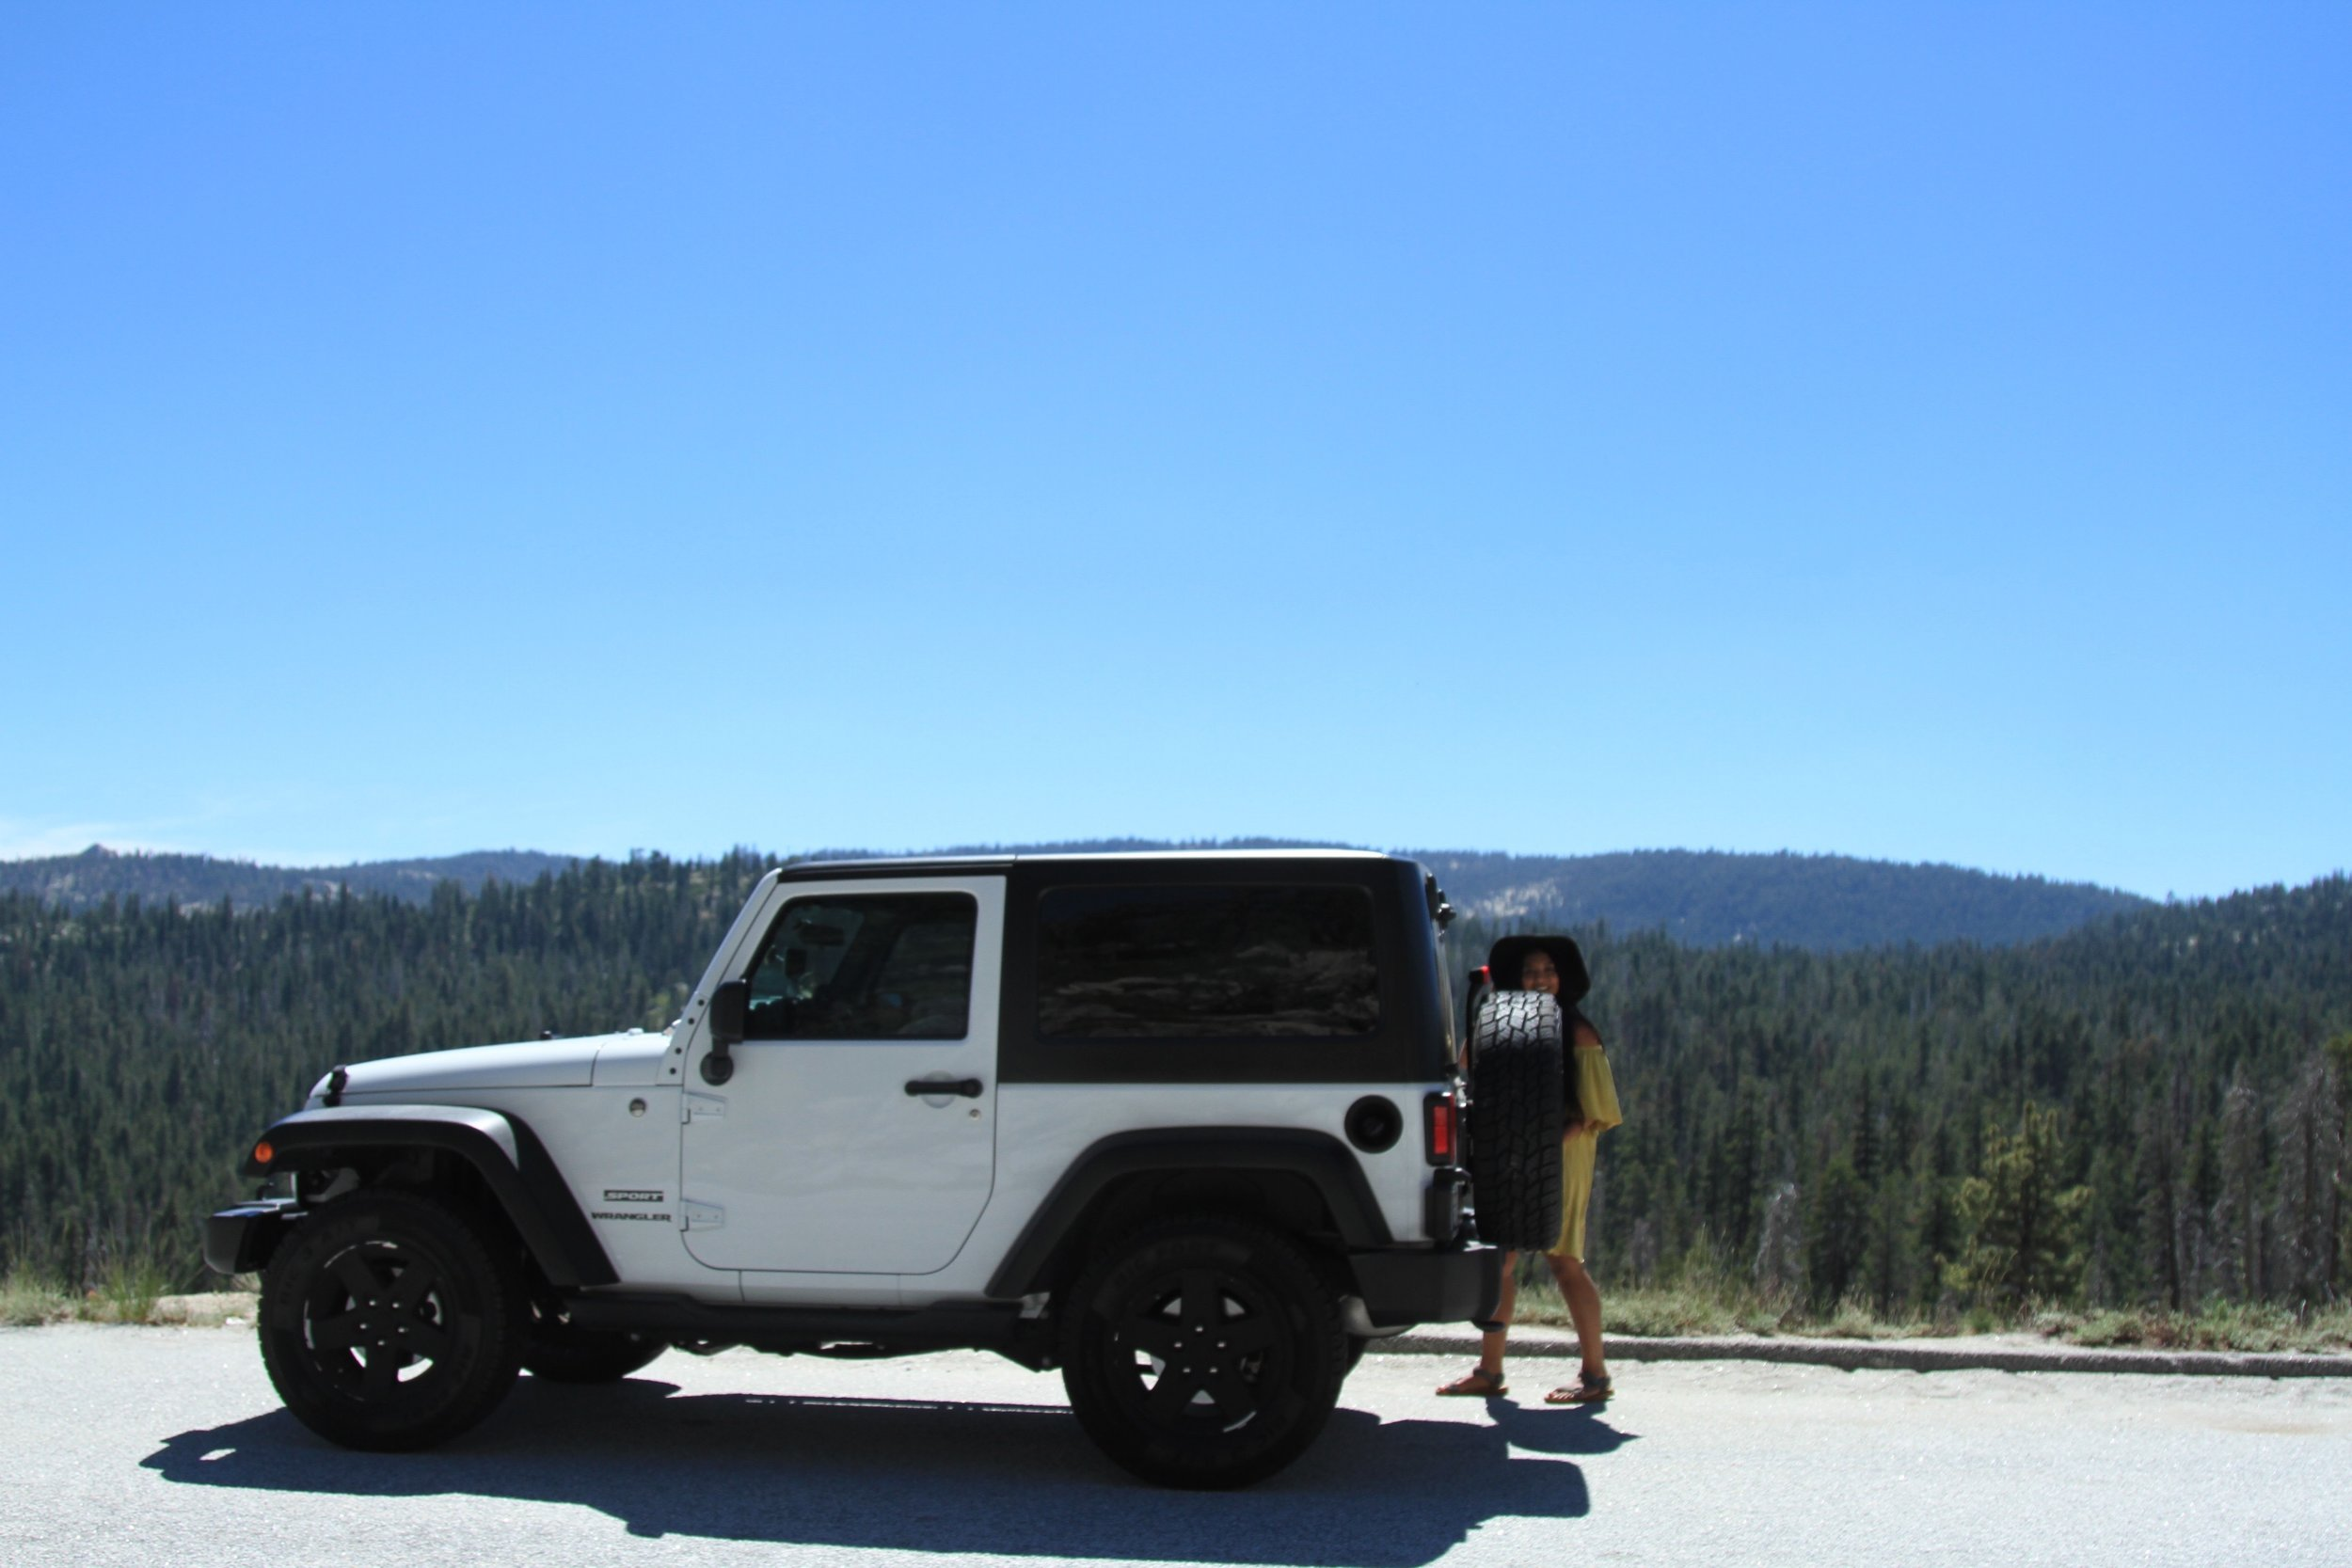 Pit stop to admire the view of Yosemite.